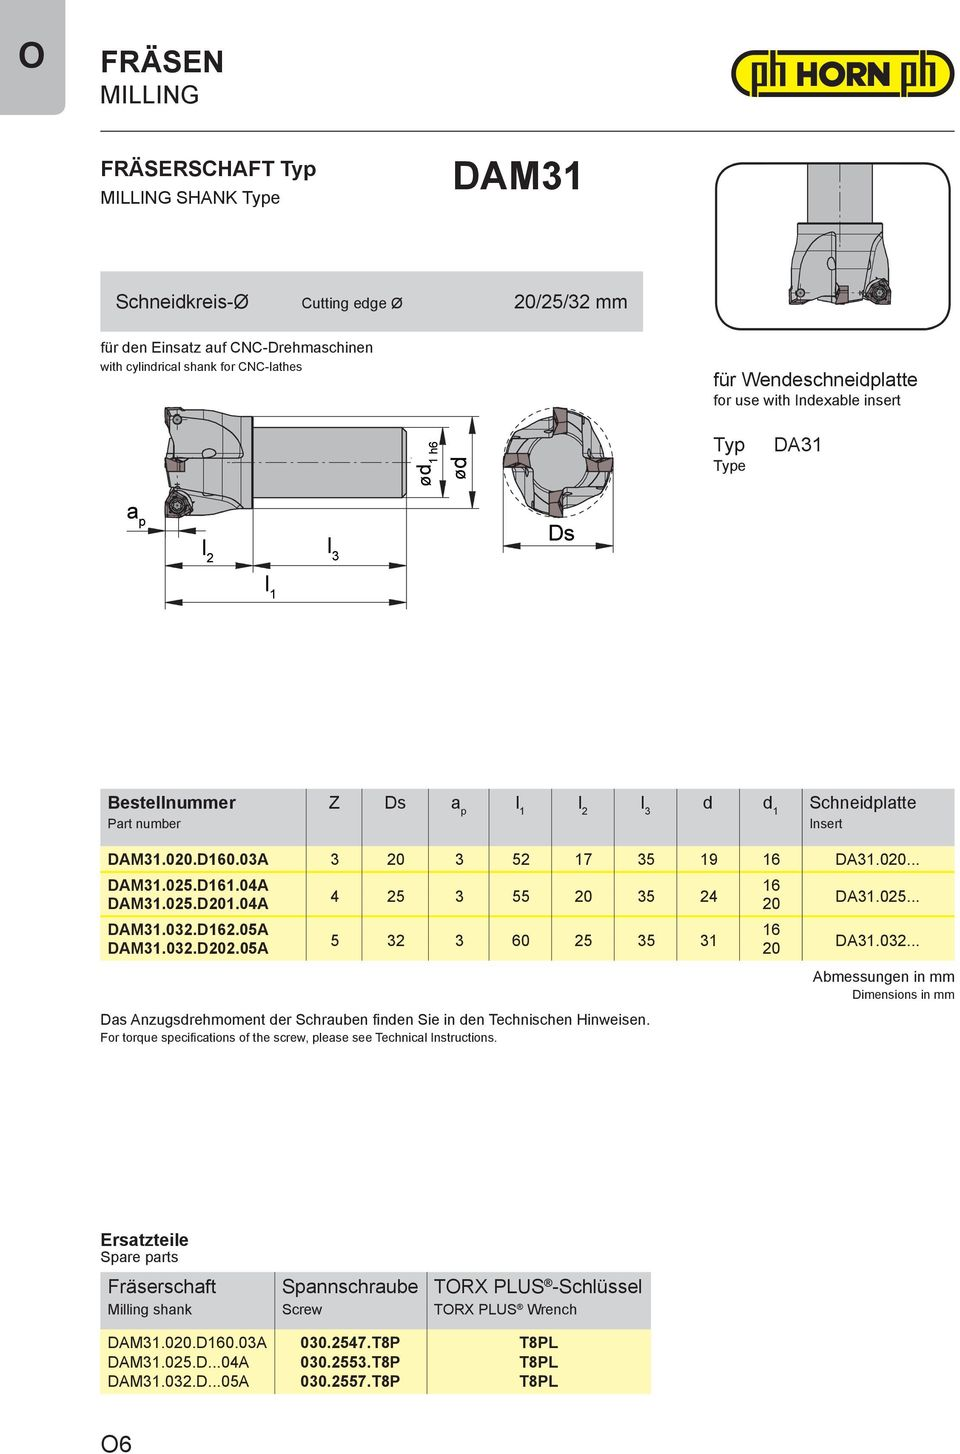 05A 5 32 3 60 25 35 31 20 Das Anzugsdrehmoment der Schrauben finden Sie in den Technischen Hinweisen. For torque specifications of the screw, please see Technical Instructions..025....032.